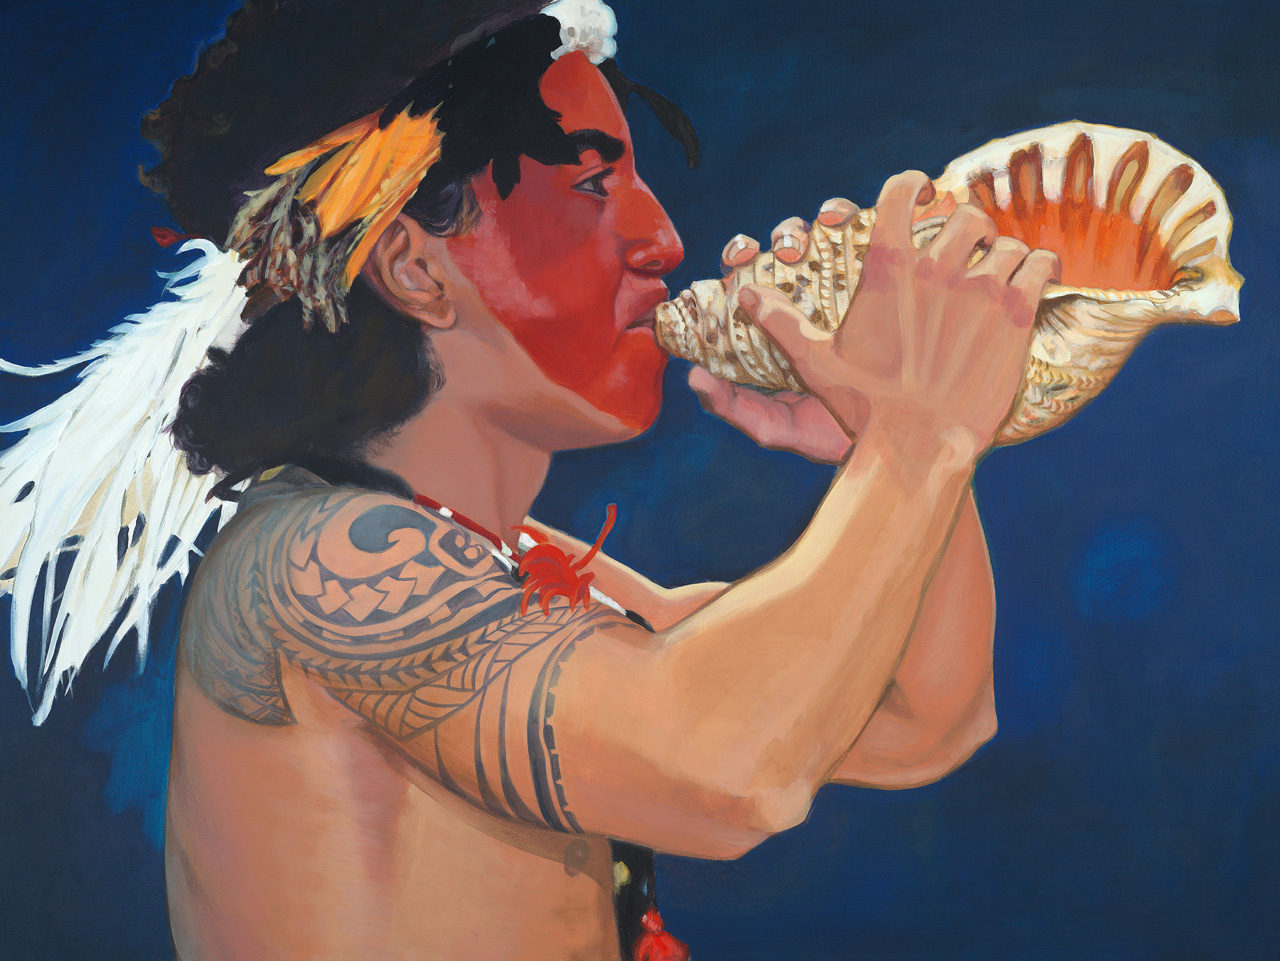 A young Hawaiian man with a painted face and tribal arm tattoo blowing a conch shell